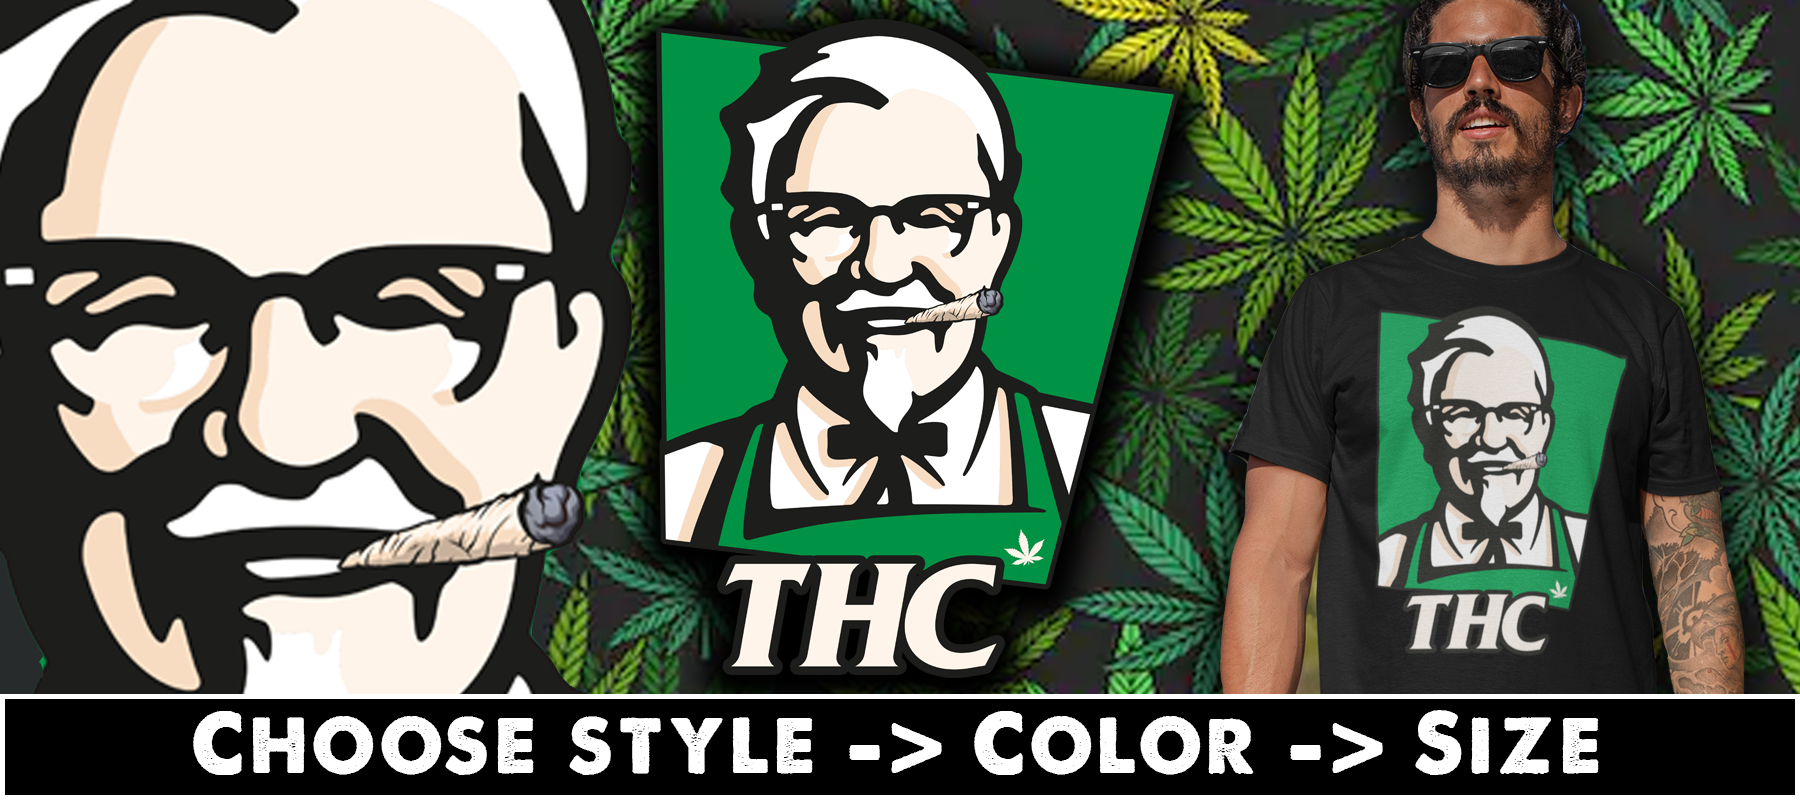 Not KFC...THC T-shirts, Hoodies & Mugs